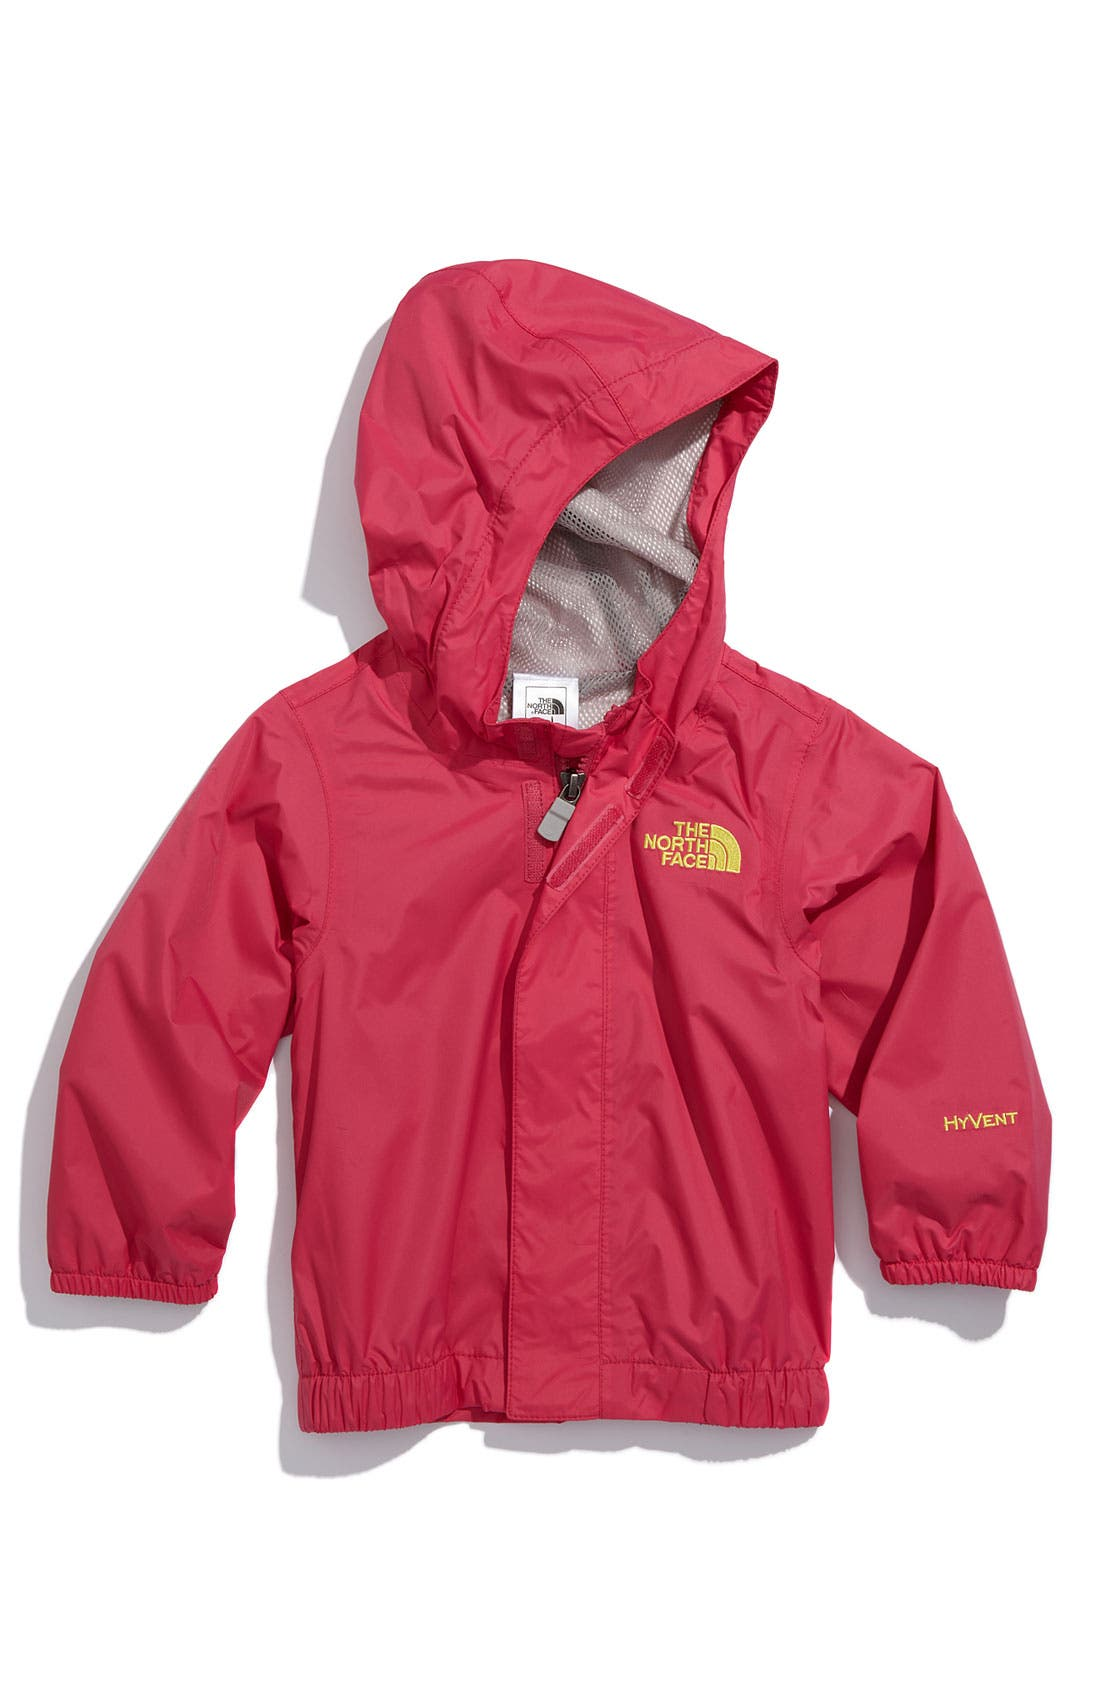 THE NORTH FACE,                             'Tailout' Rain Jacket,                             Main thumbnail 1, color,                             650